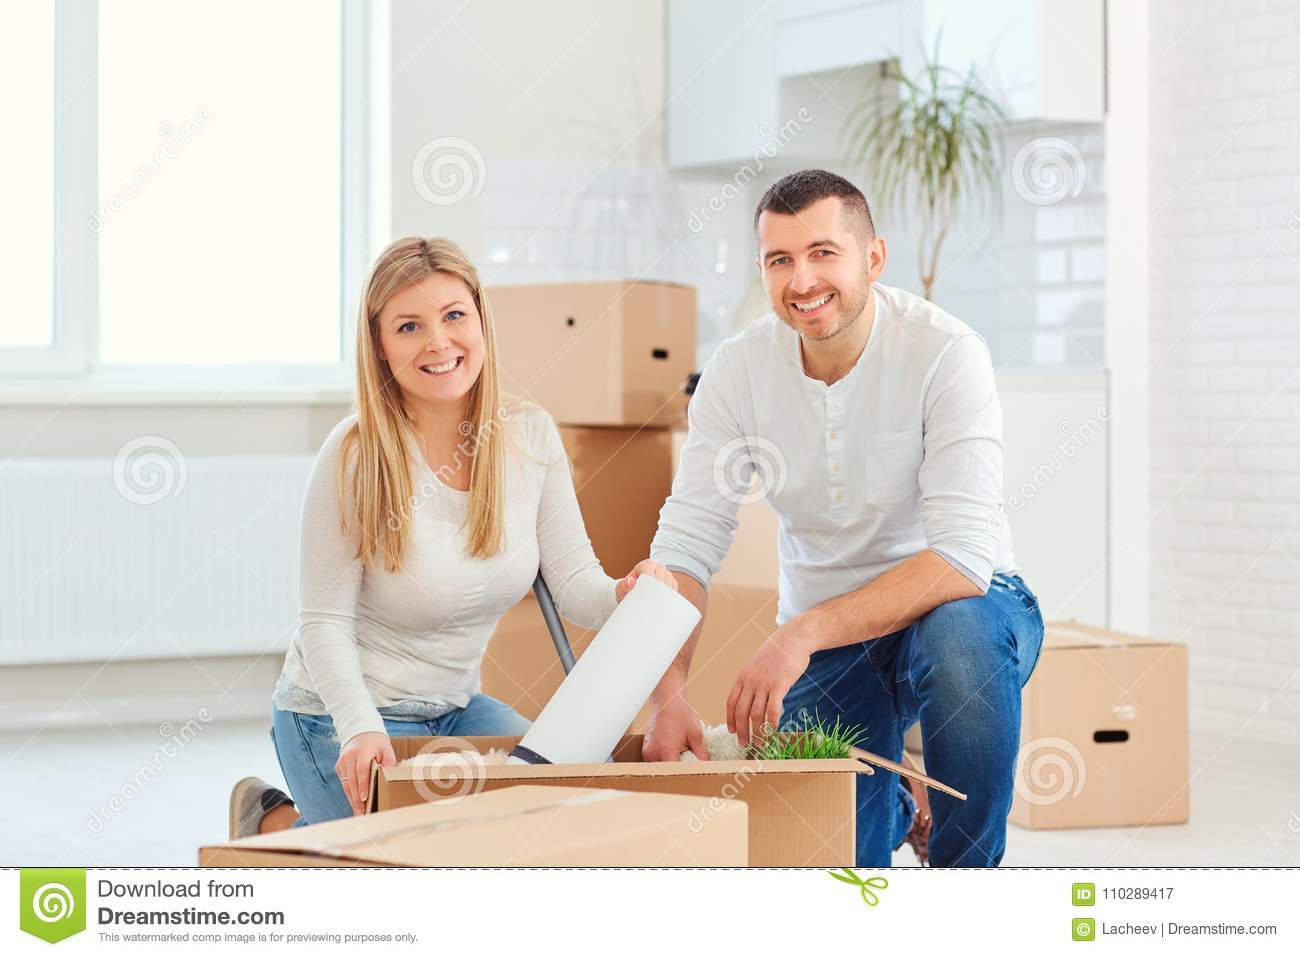 A couple with boxes moves to a new house.